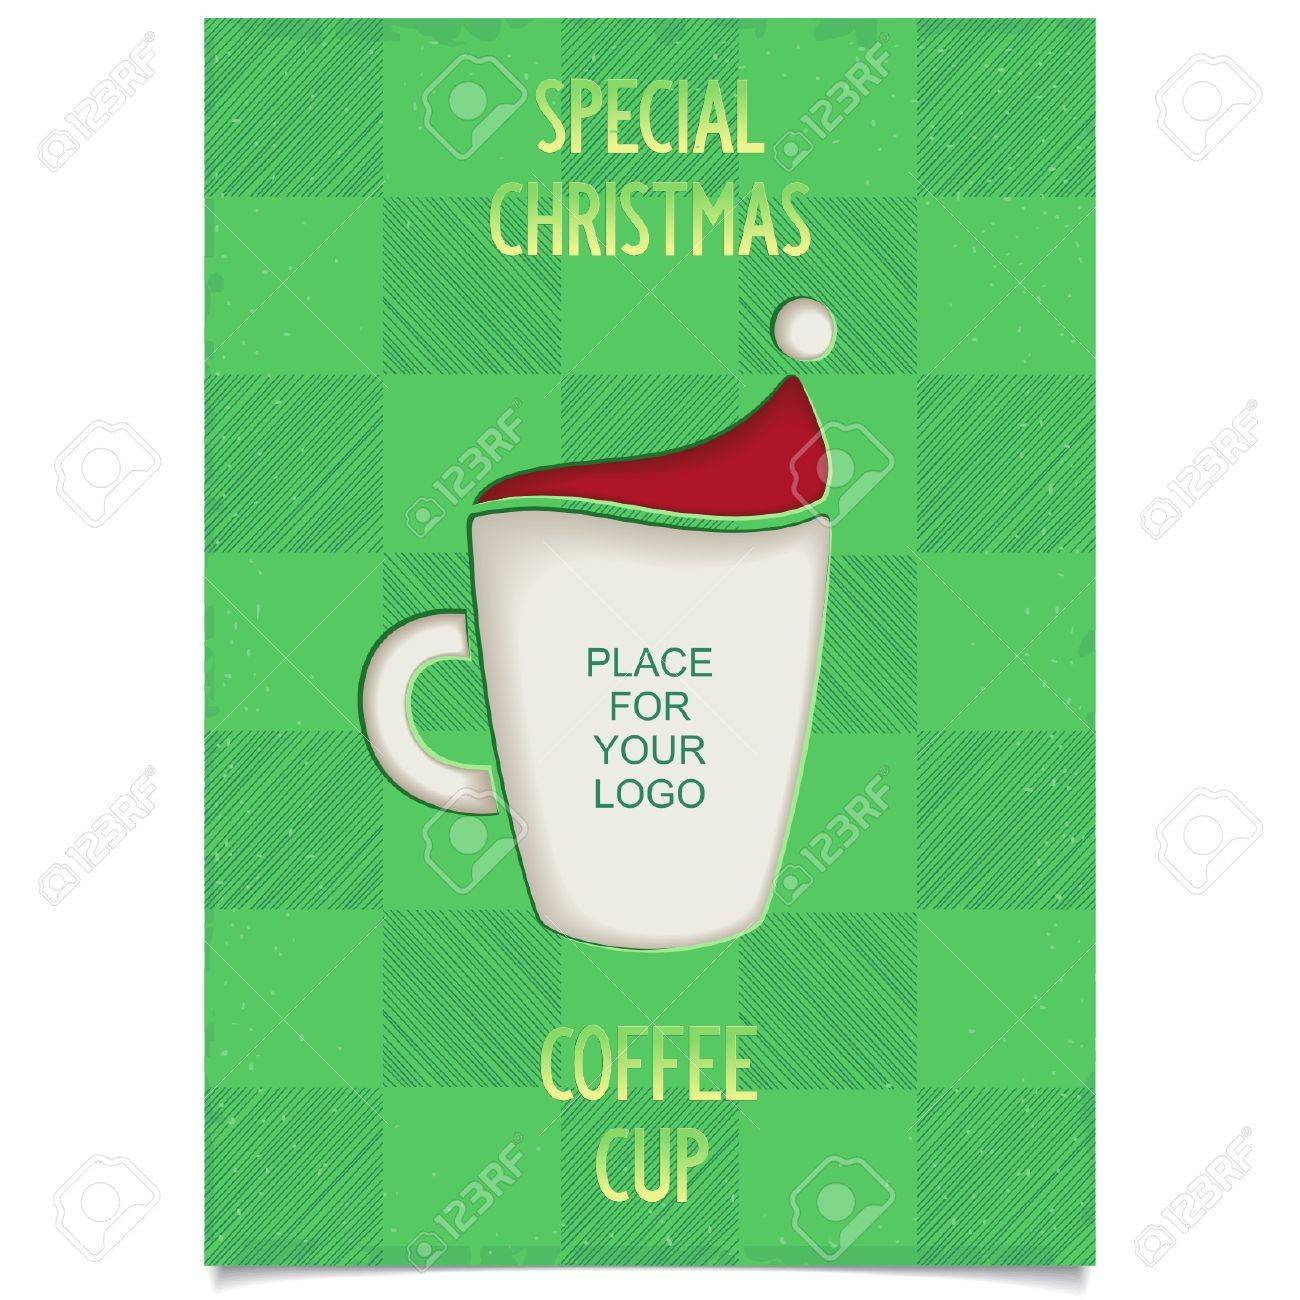 Poster design restaurant - Fun Vintage Christmas Poster Design For Restaurant And Cafe With Cup Coffee And Stylized Santa Claus